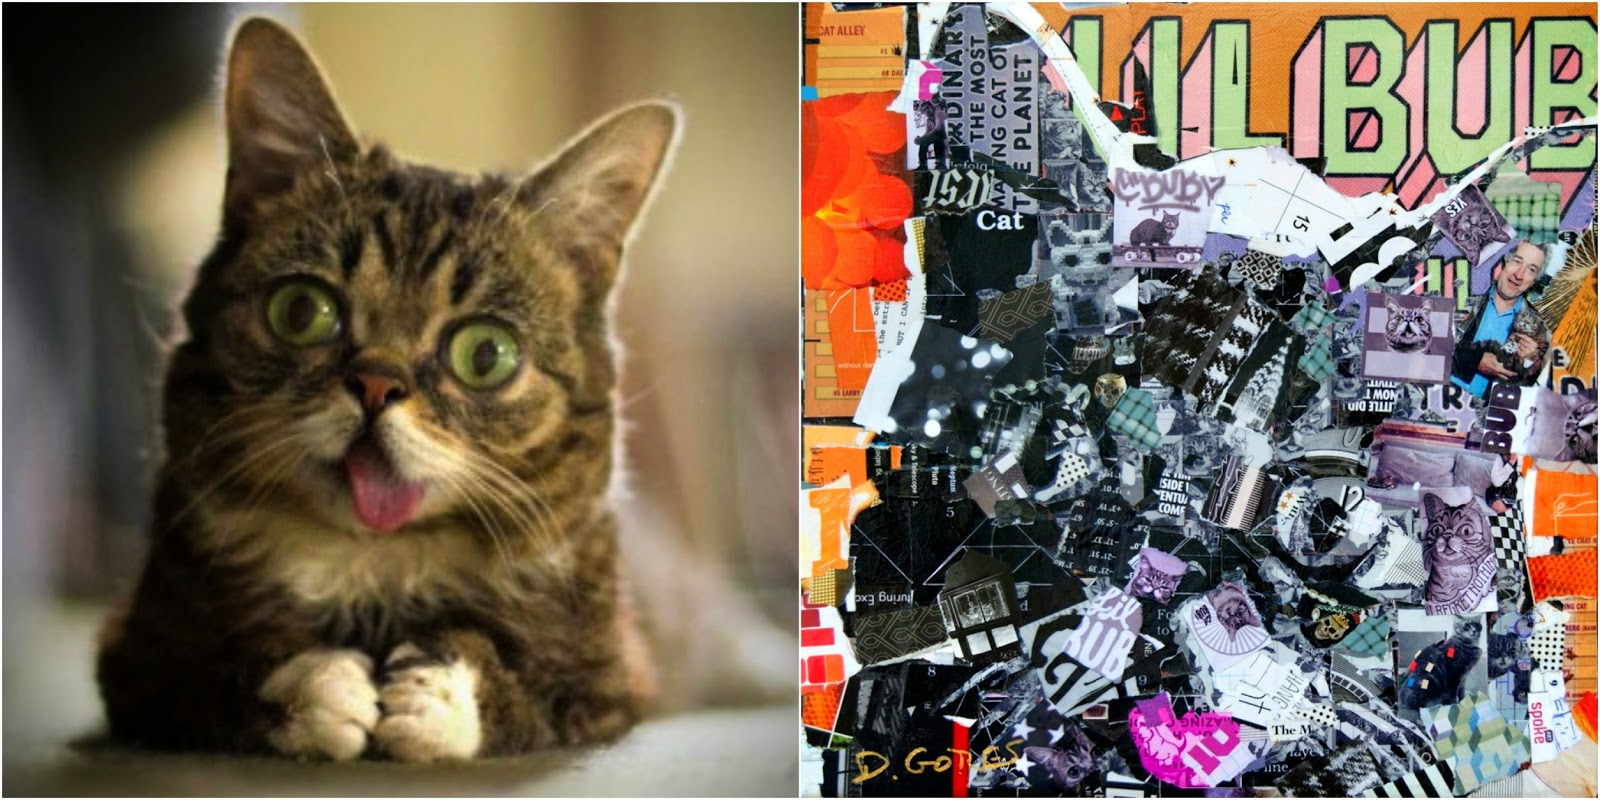 lil-bub-cat-by-Derek-Gores